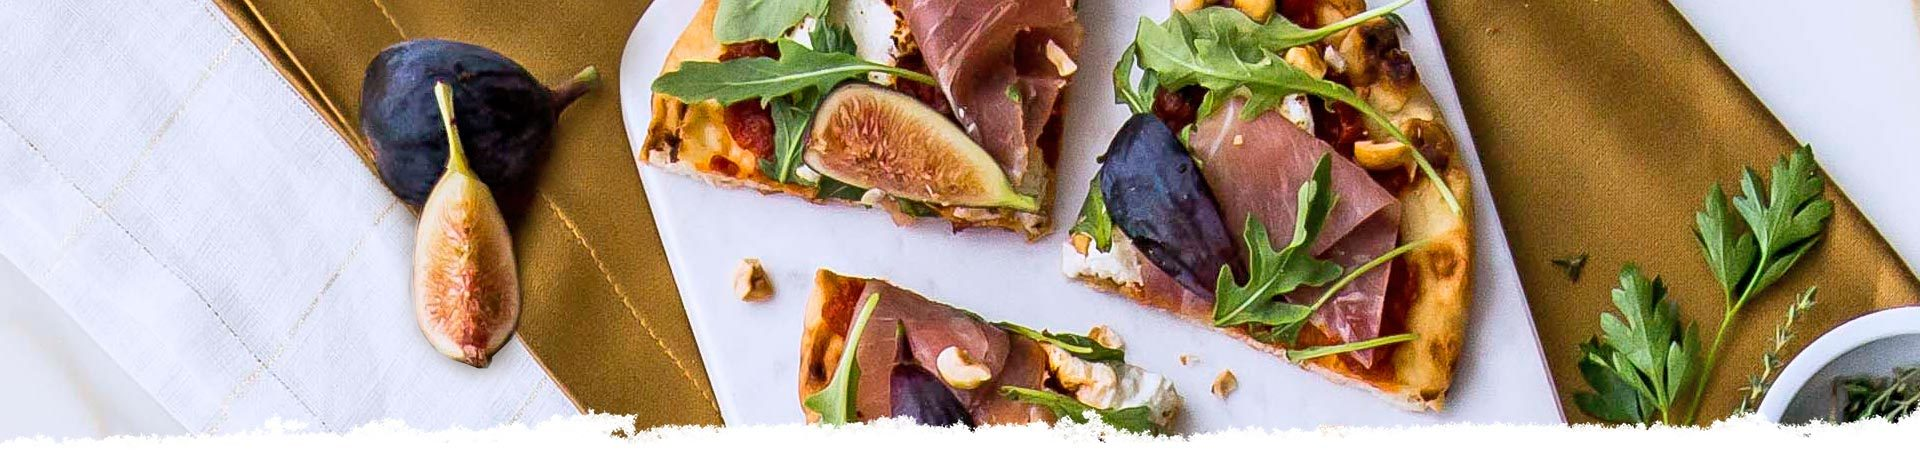 Flatbread with Fig, Prosciutto, and Arugula